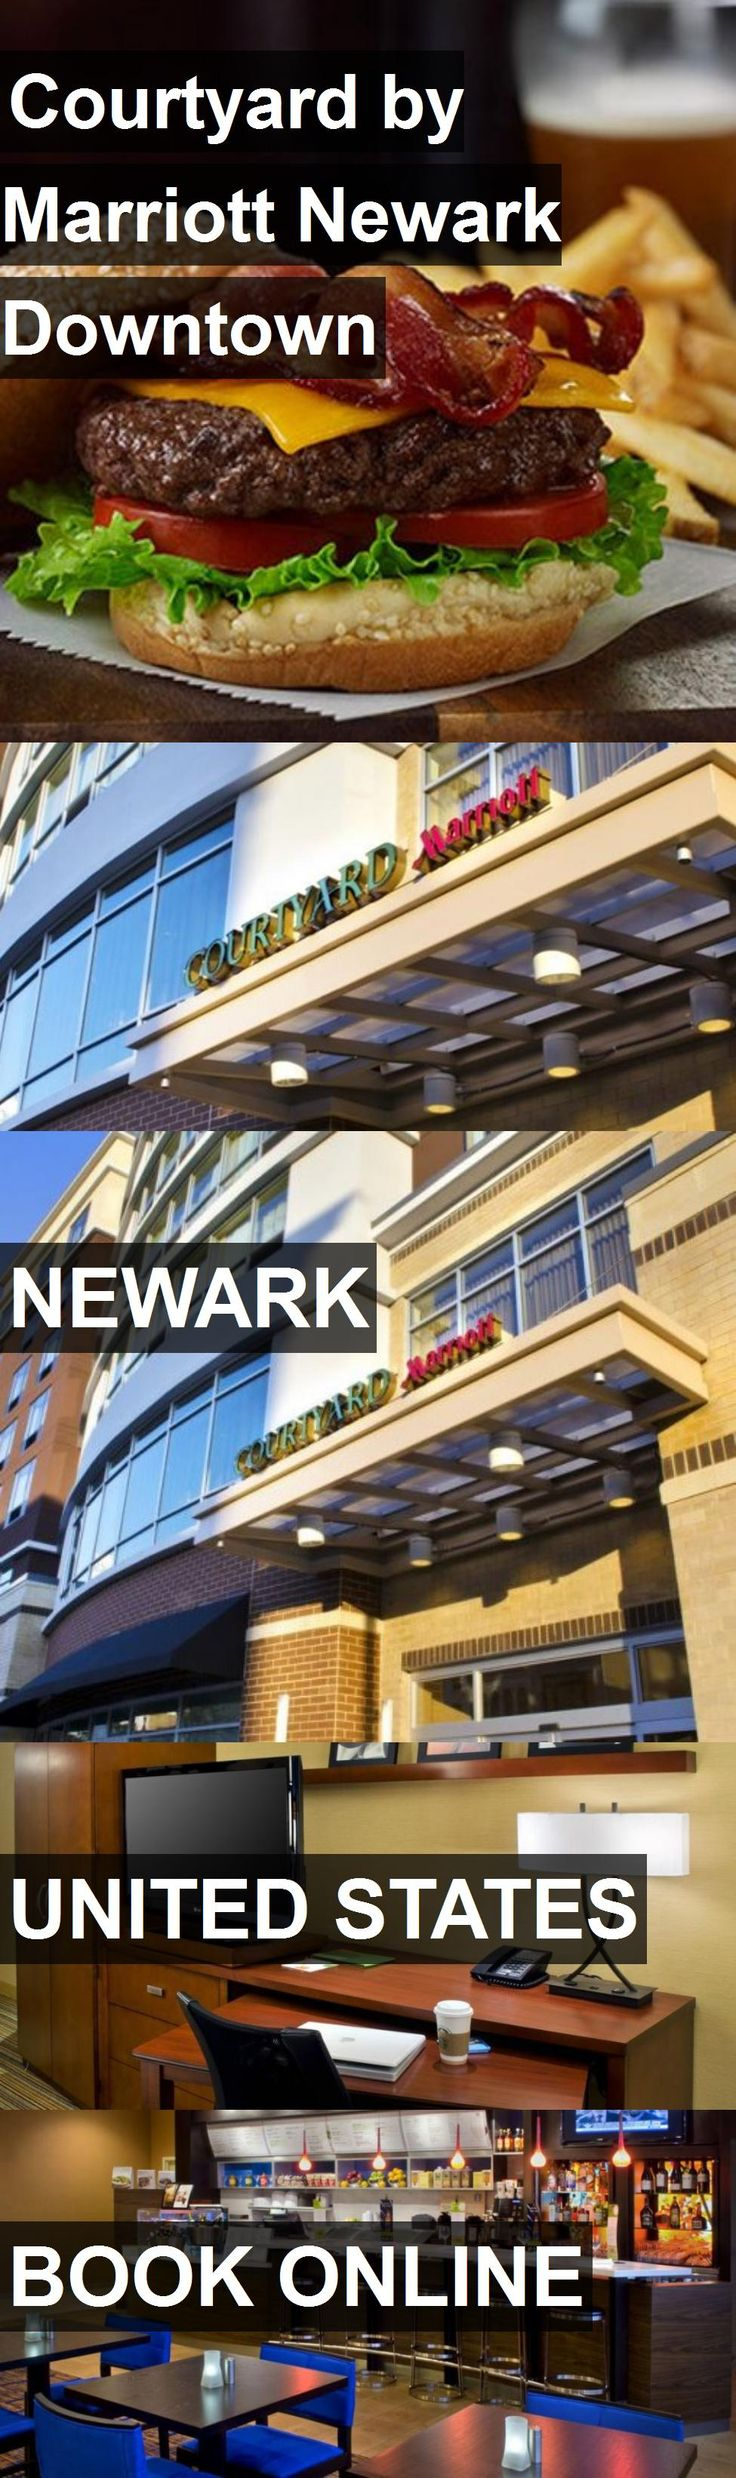 Hotel Courtyard by Marriott Newark Downtown in Newark, United States. For more information, photos, reviews and best prices please follow the link. #UnitedStates #Newark #travel #vacation #hotel